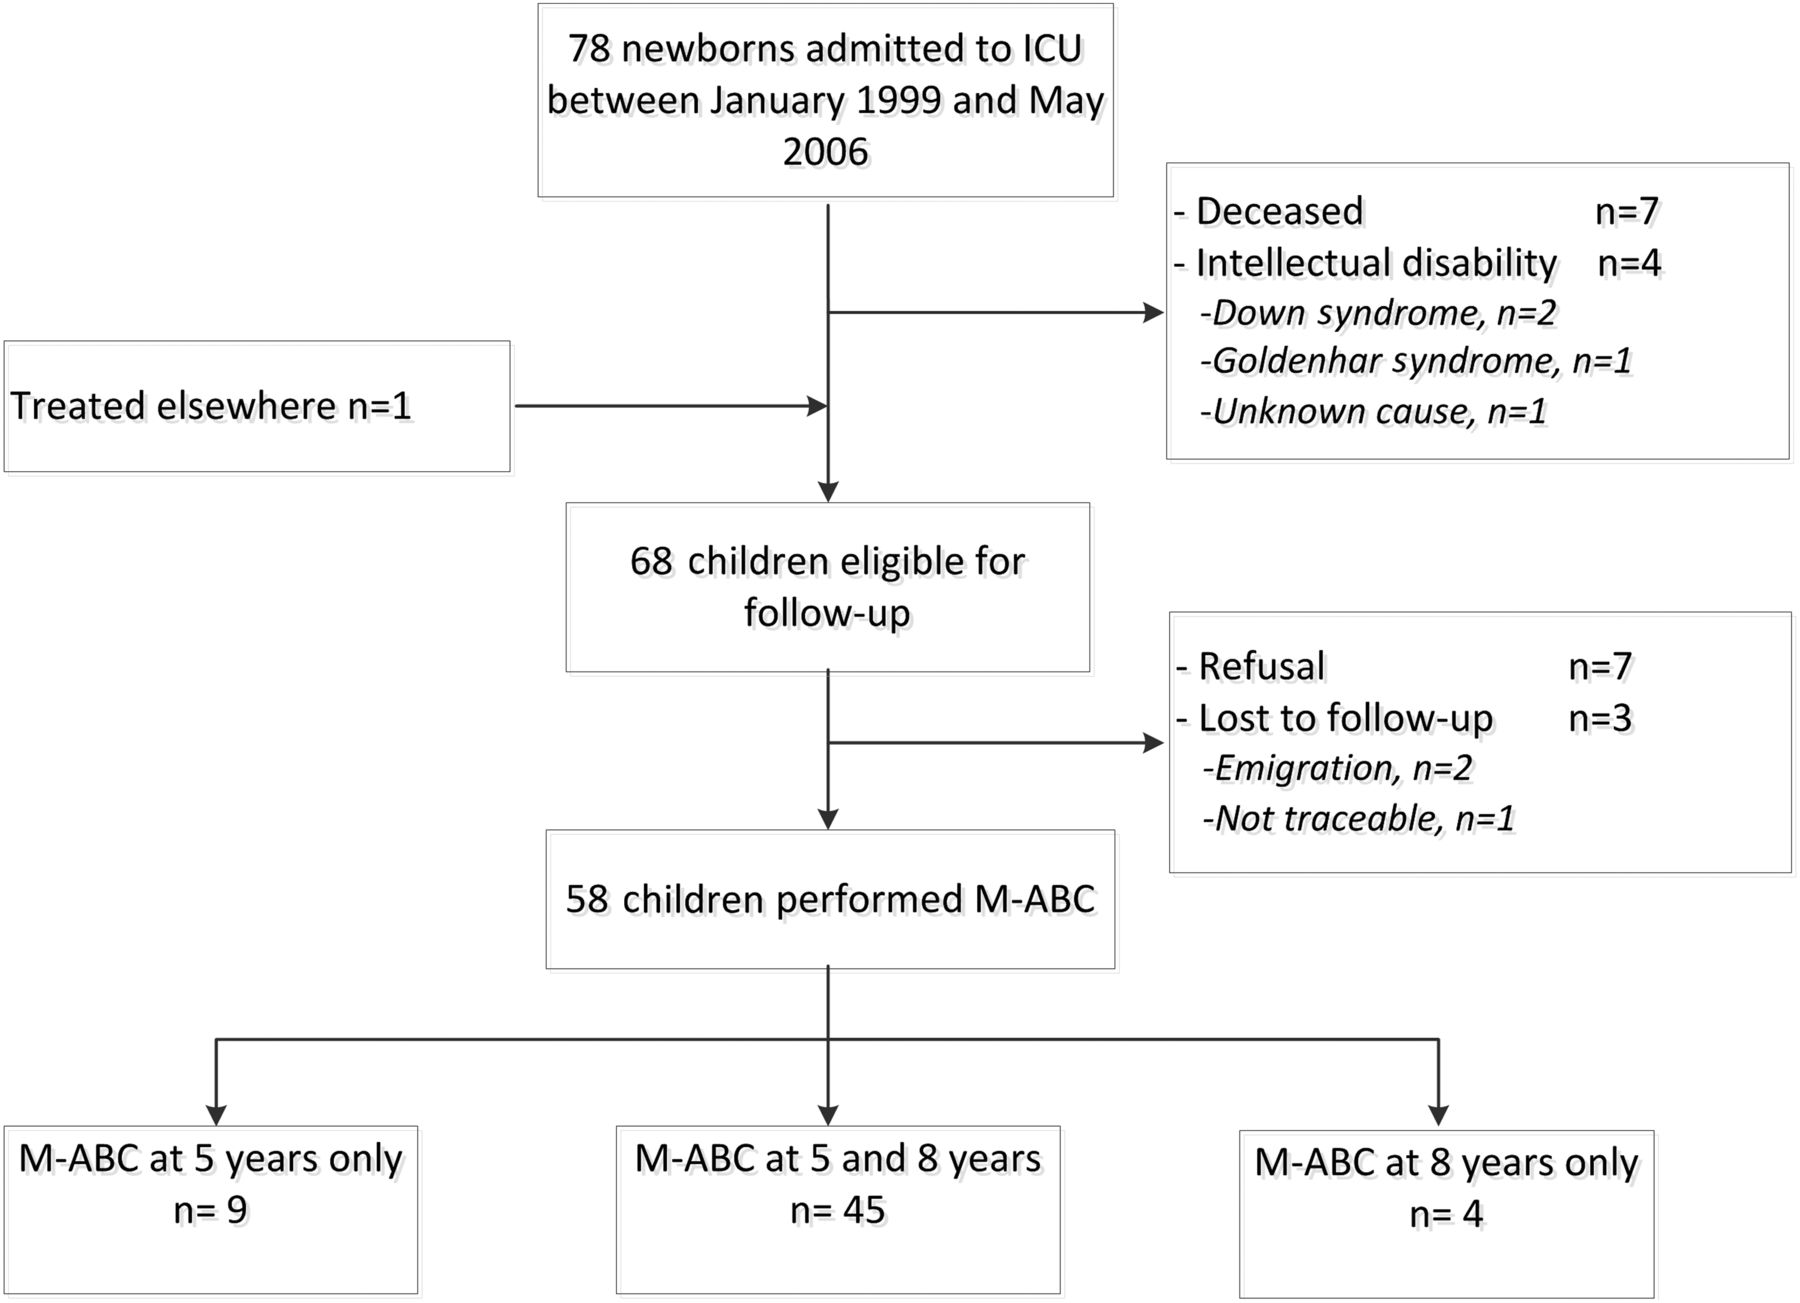 developmental problems in patients with oesophageal atresia a